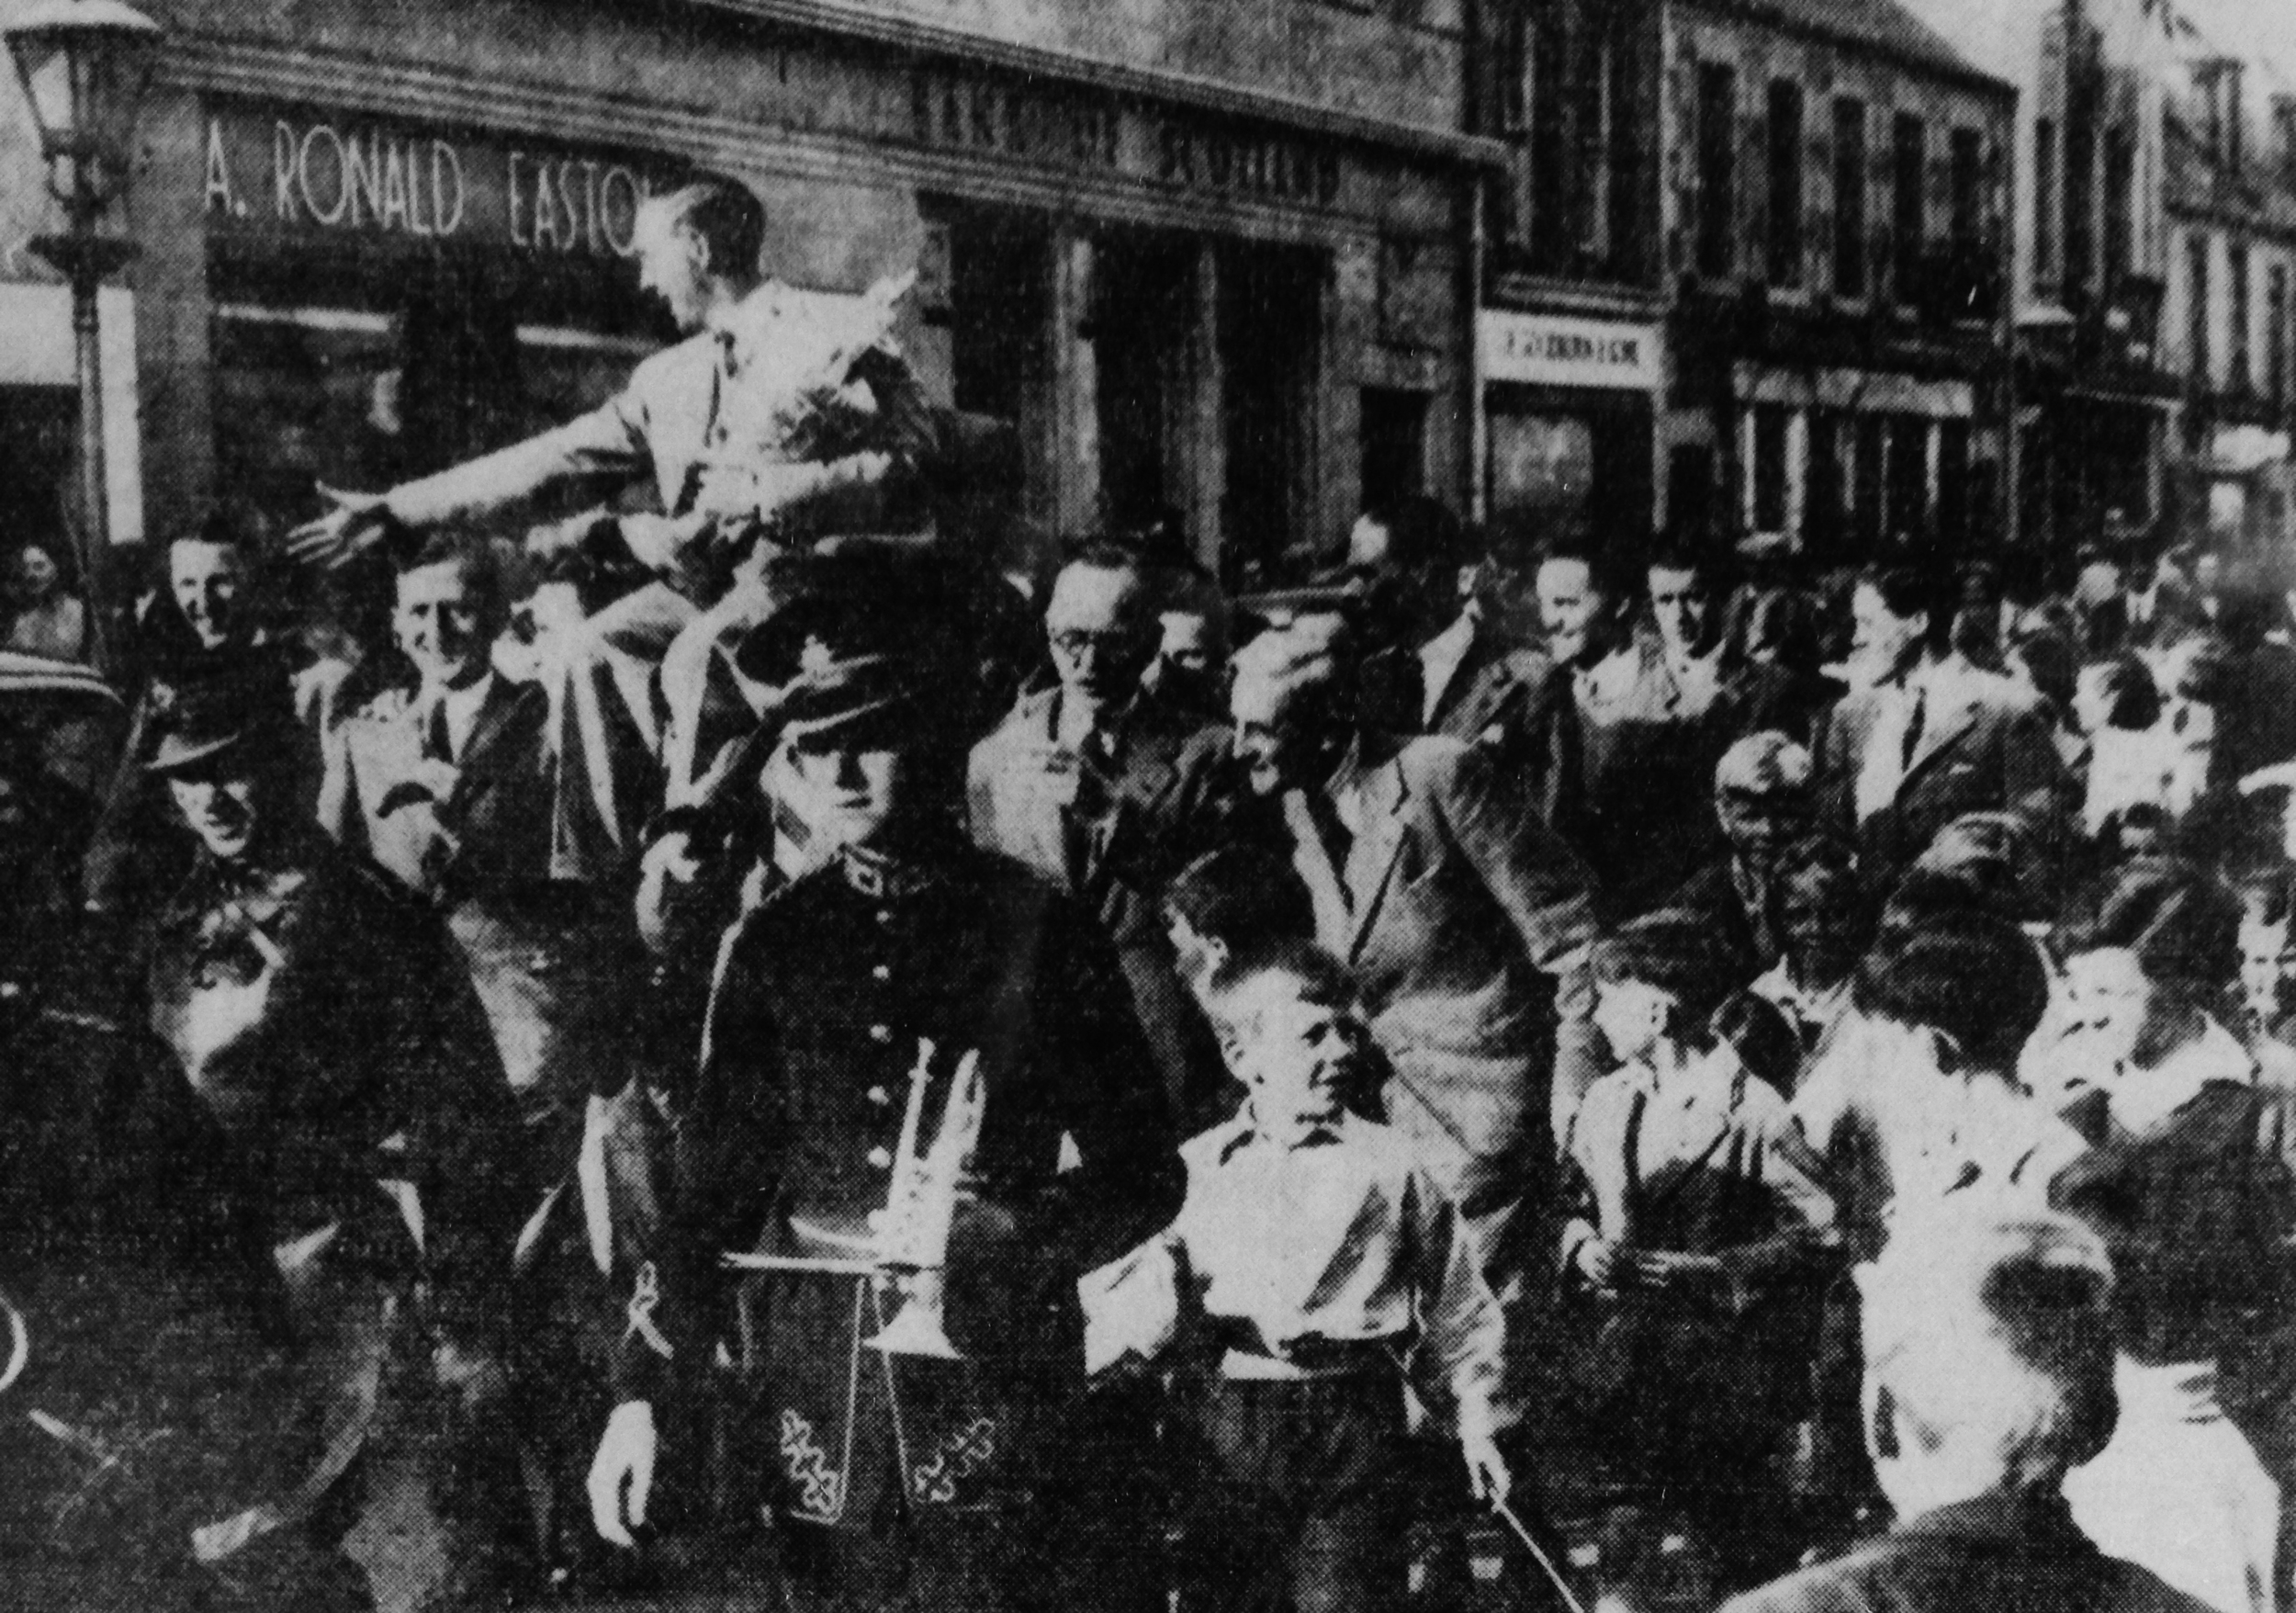 A.T. Kyle is given a civic reception in Peebles on his return